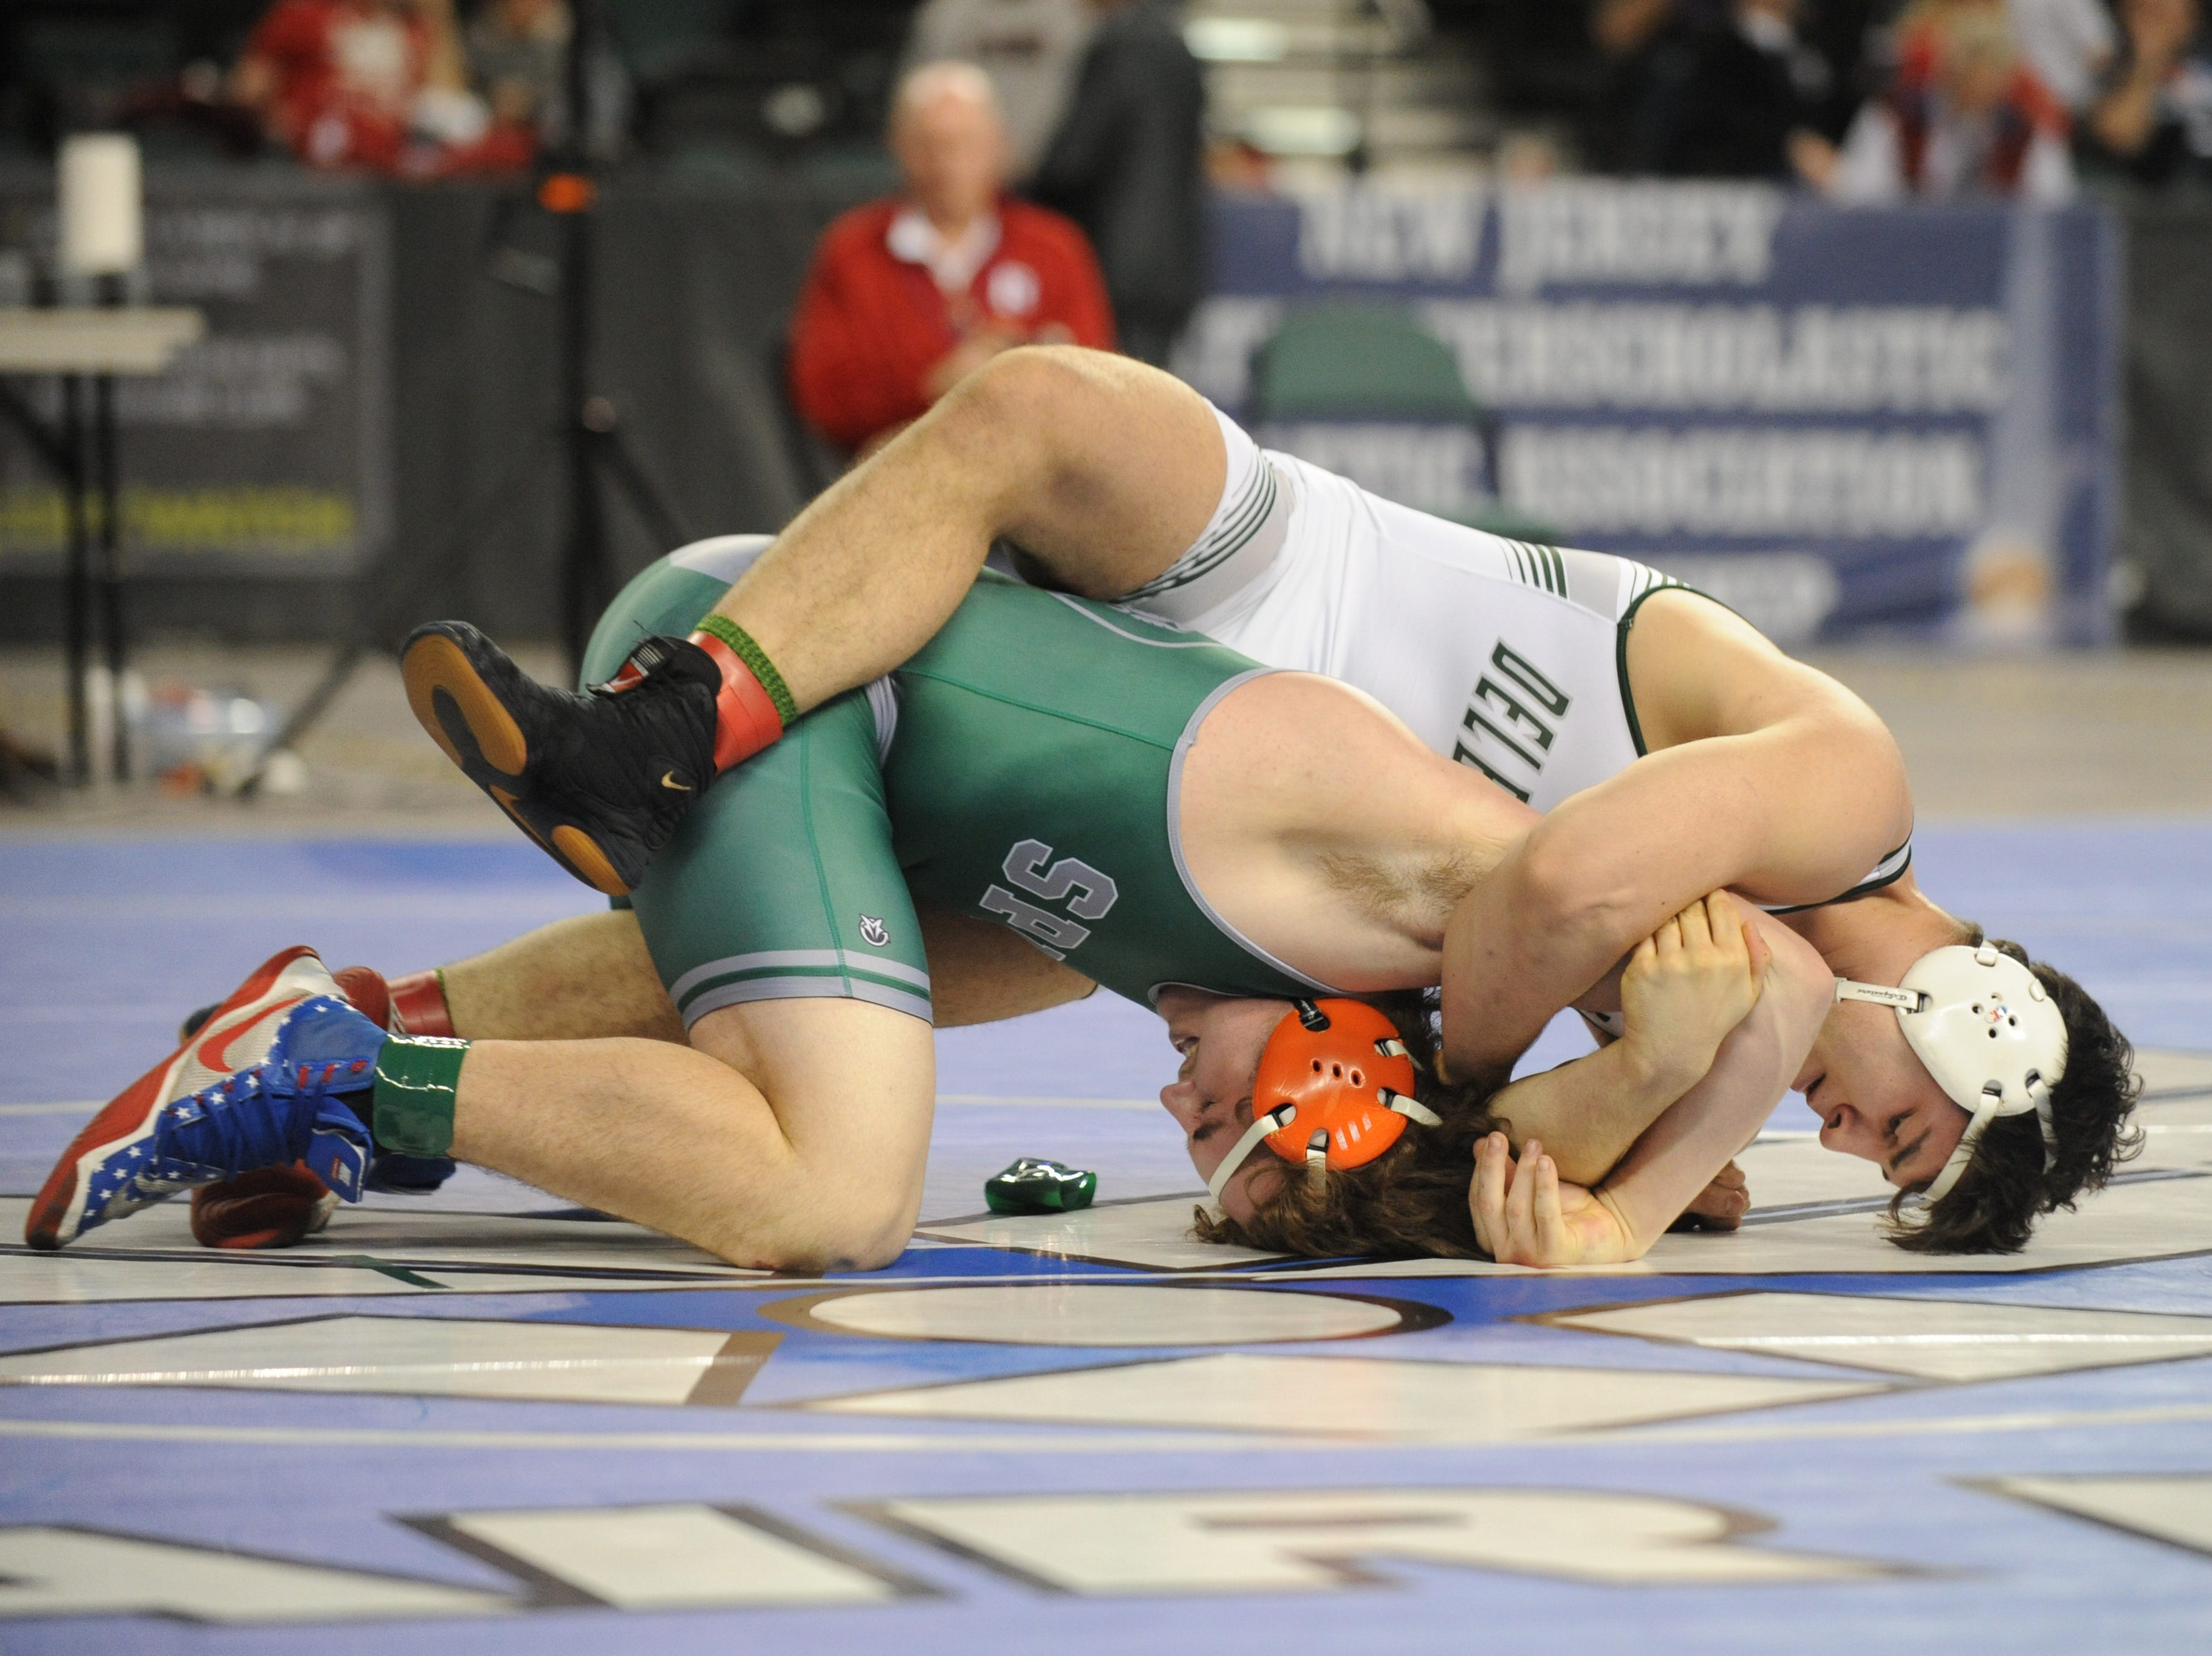 South Plainfield's Luke Niemeyer wrestles Delbarton's Luke Chakonis in a 195-pound 3rd place bout during the NJSIAA Individual Wrestling Championships at Boardwalk Hall in Atlantic City, Saturday, March 2, 2019.